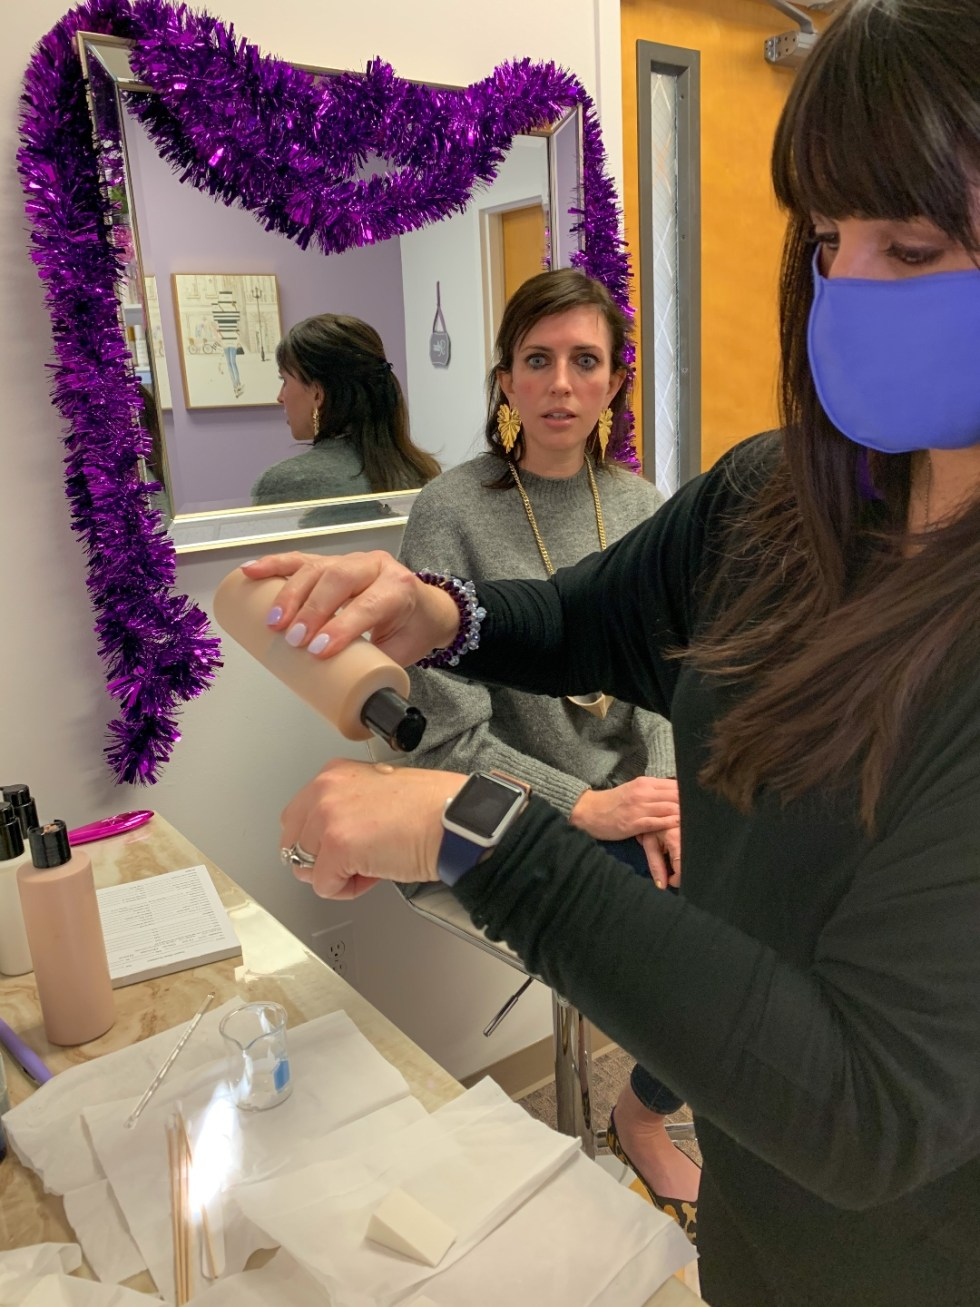 A Custom Foundation Blend at Colette Skincare - I'm Fixin' To - @imfixintoblog |Custom Foundation Blend by popular NC beauty blog, I'm Fixin' To: image of a woman sitting in a white barstool chair in front of a mirror decorated with purple tinsel at Colette Skincare and watching a woman put foundation on her hand.